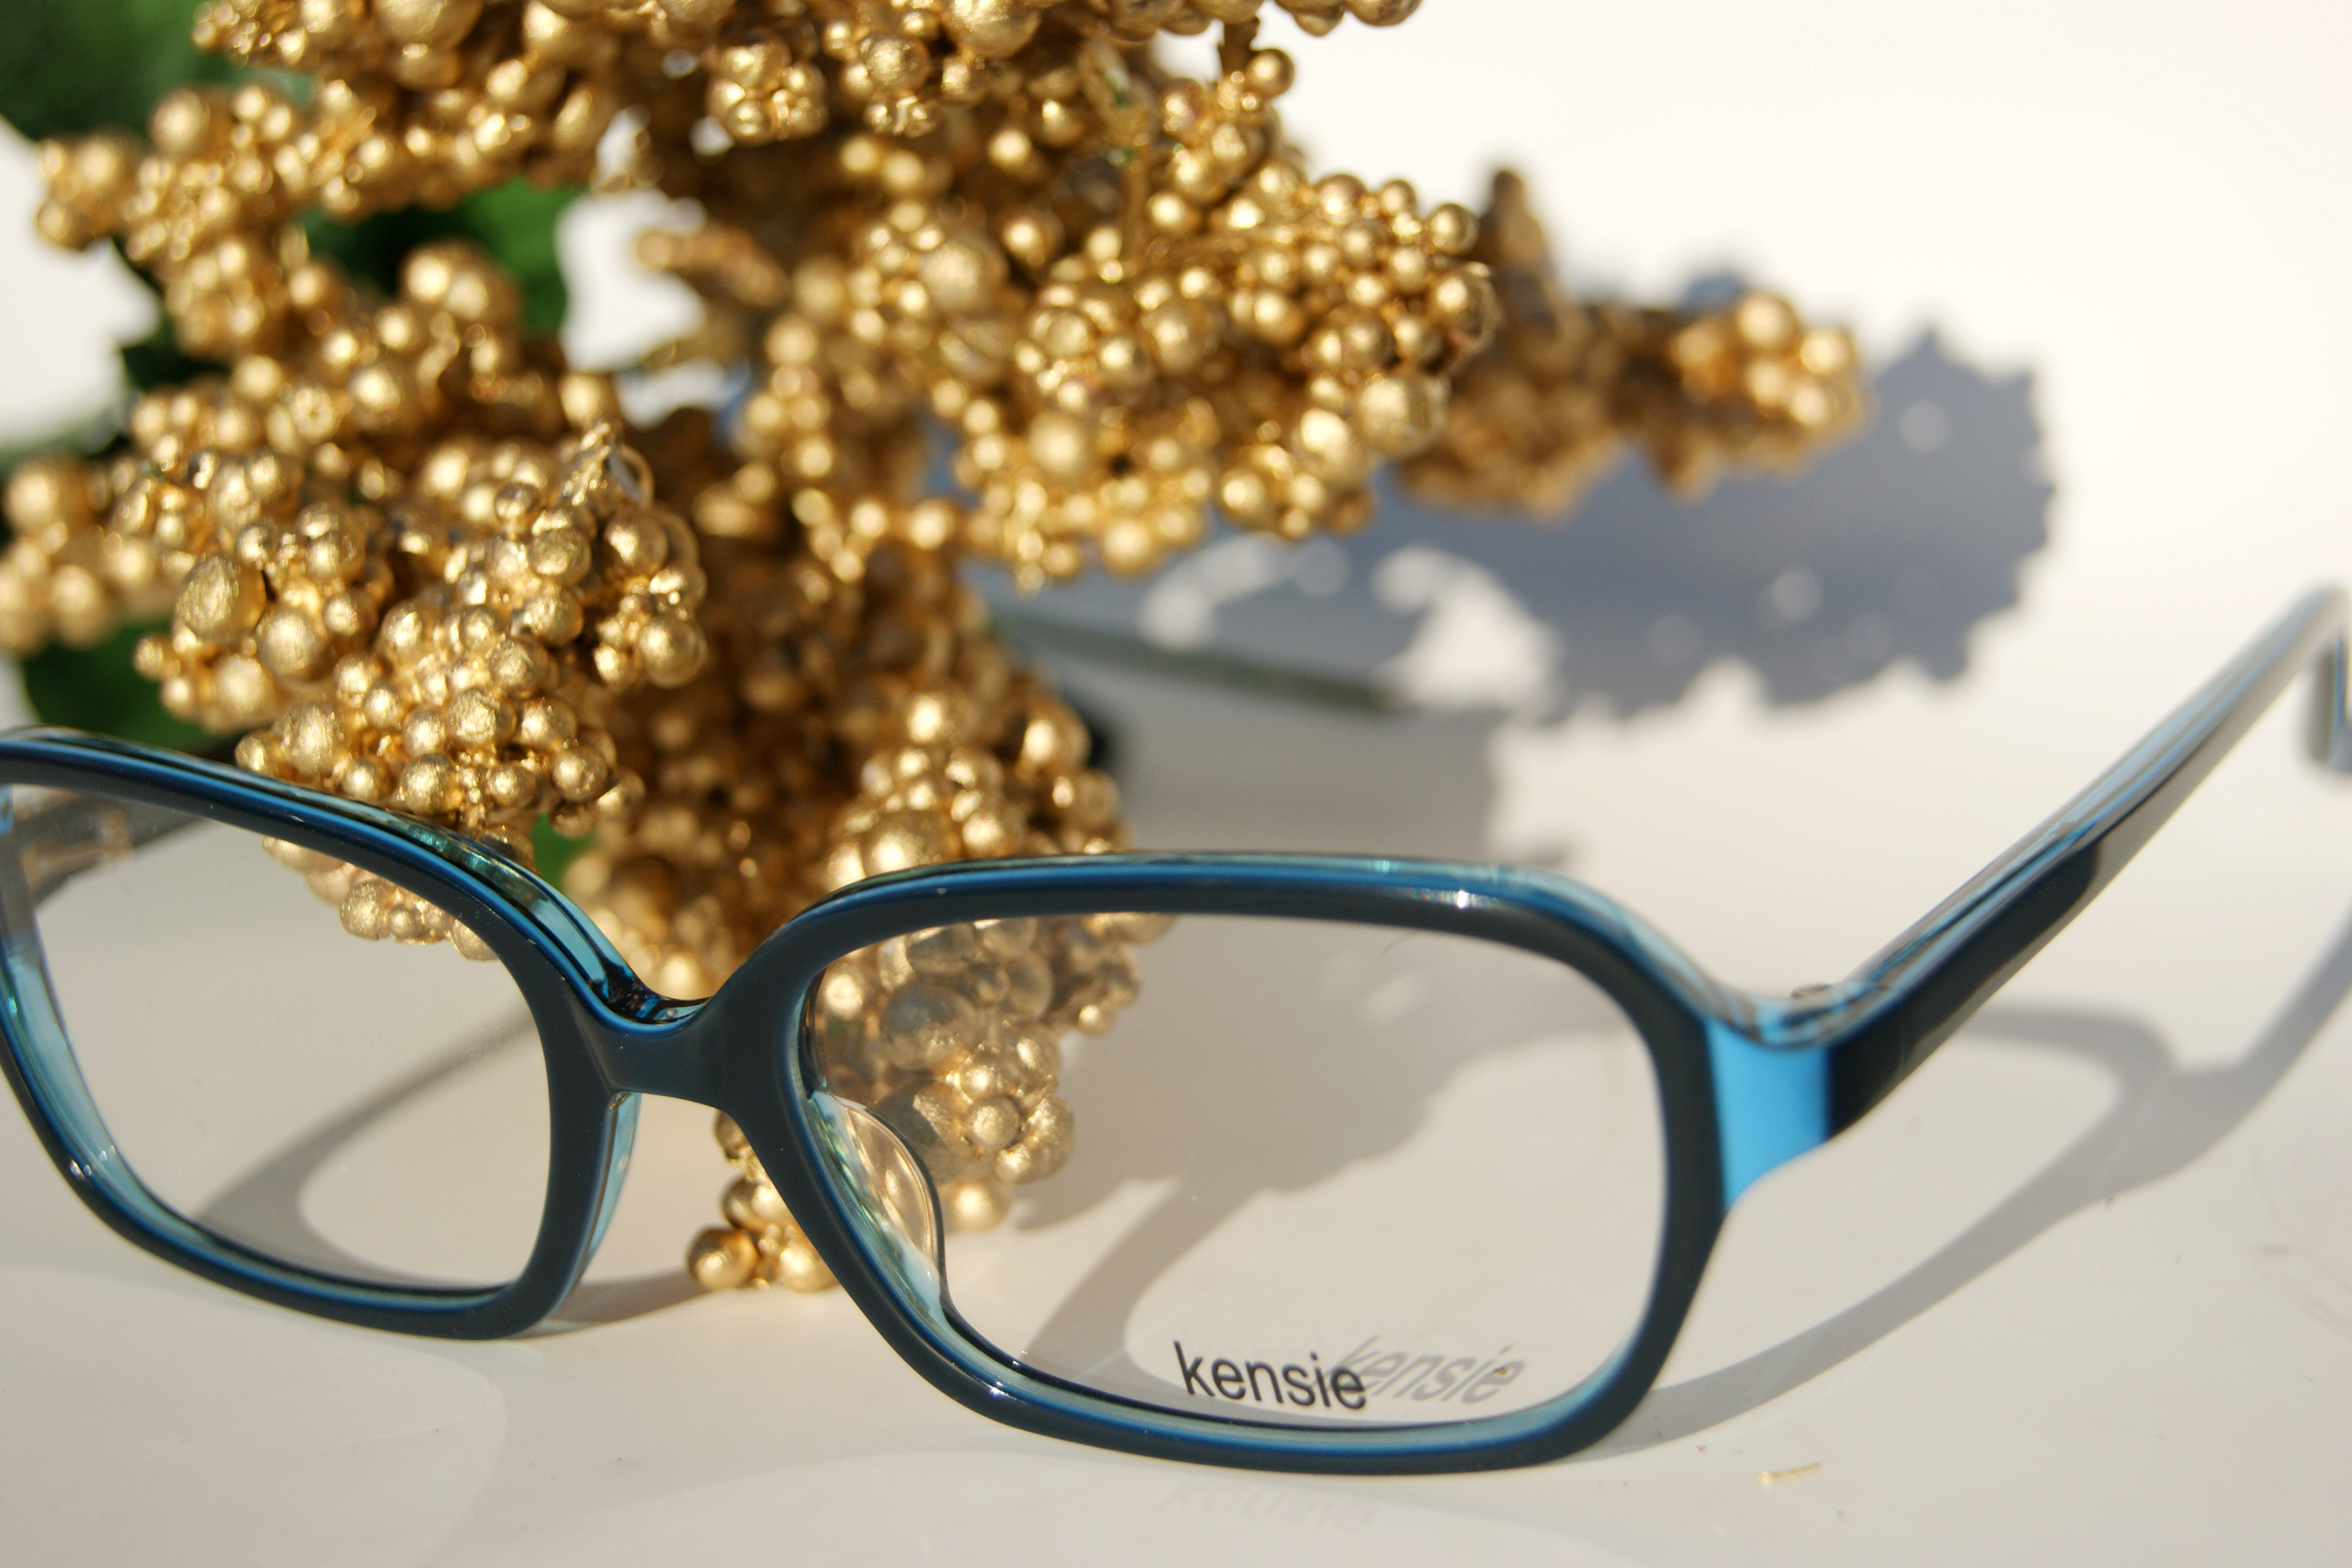 Blue Moon Glasses Frames : BLUE MOON EYE GLASSES FRAMES Glass Eyes Online